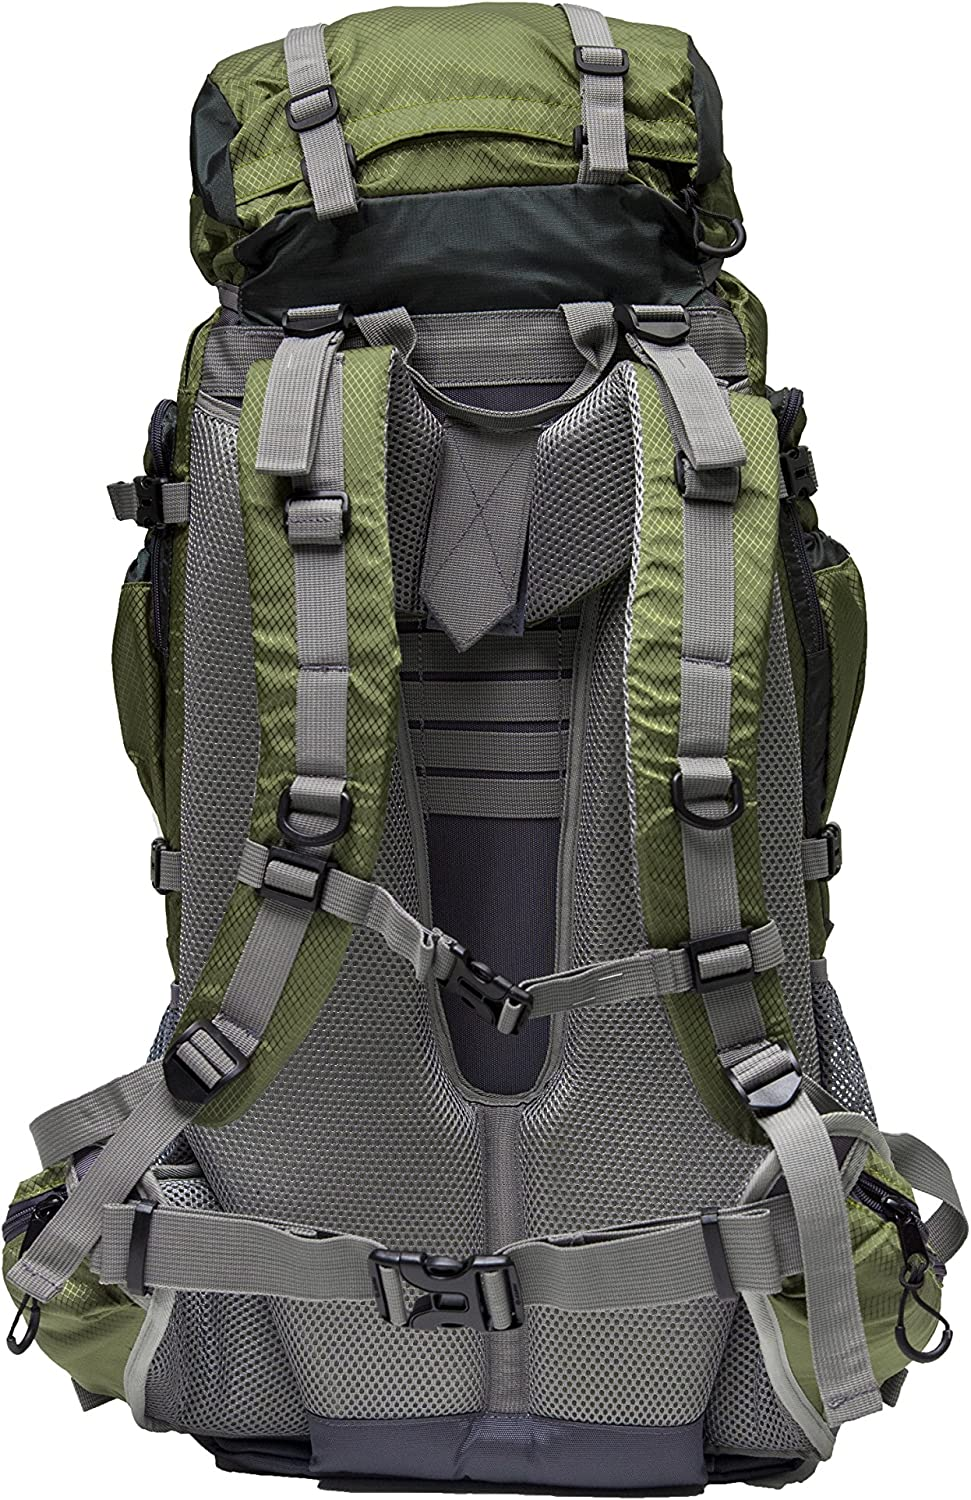 American Outback Glacier Internal Frame Hiking Backpack